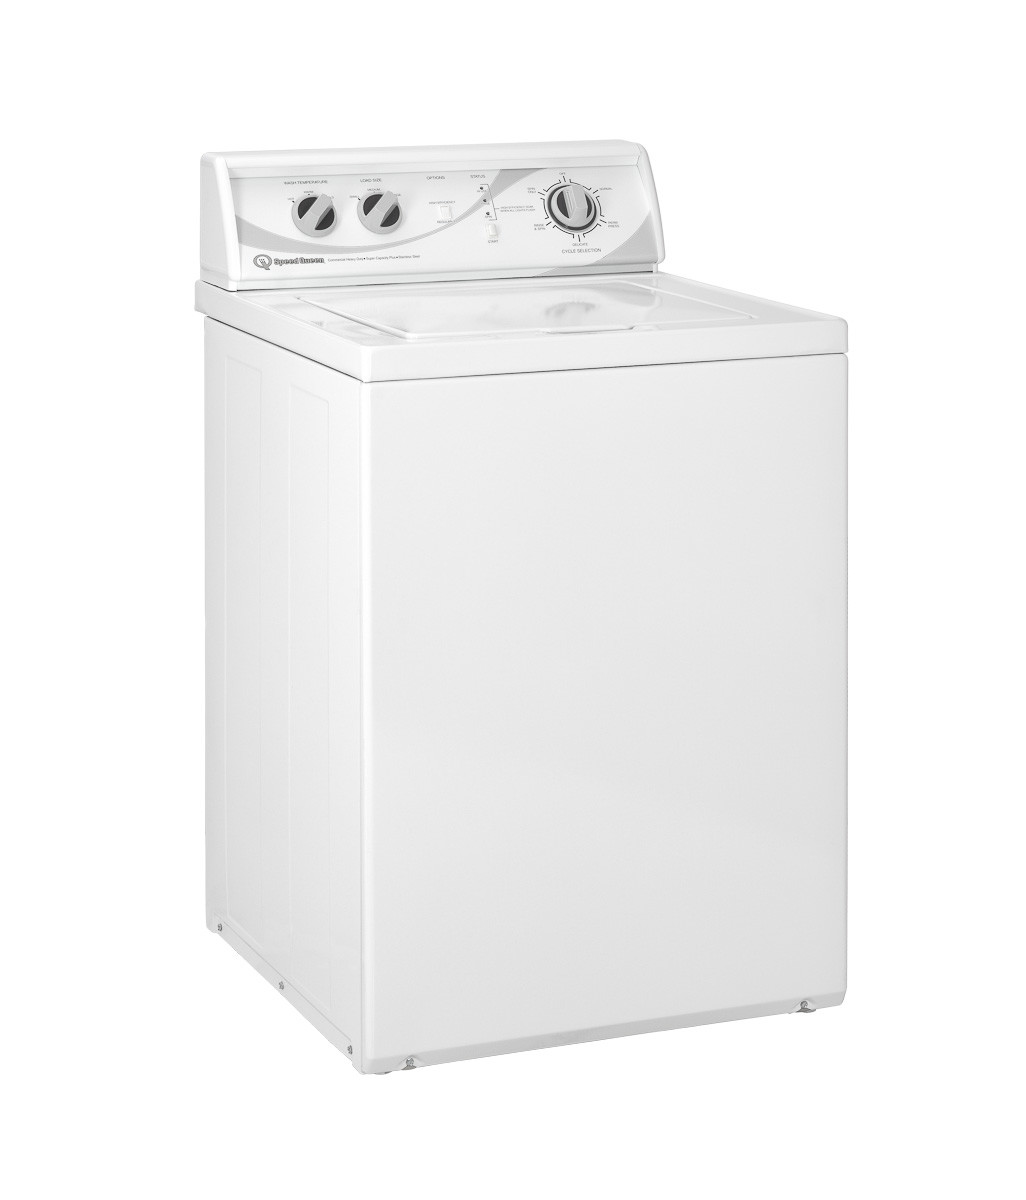 Commercial top load washer Speed Queen right side angled view